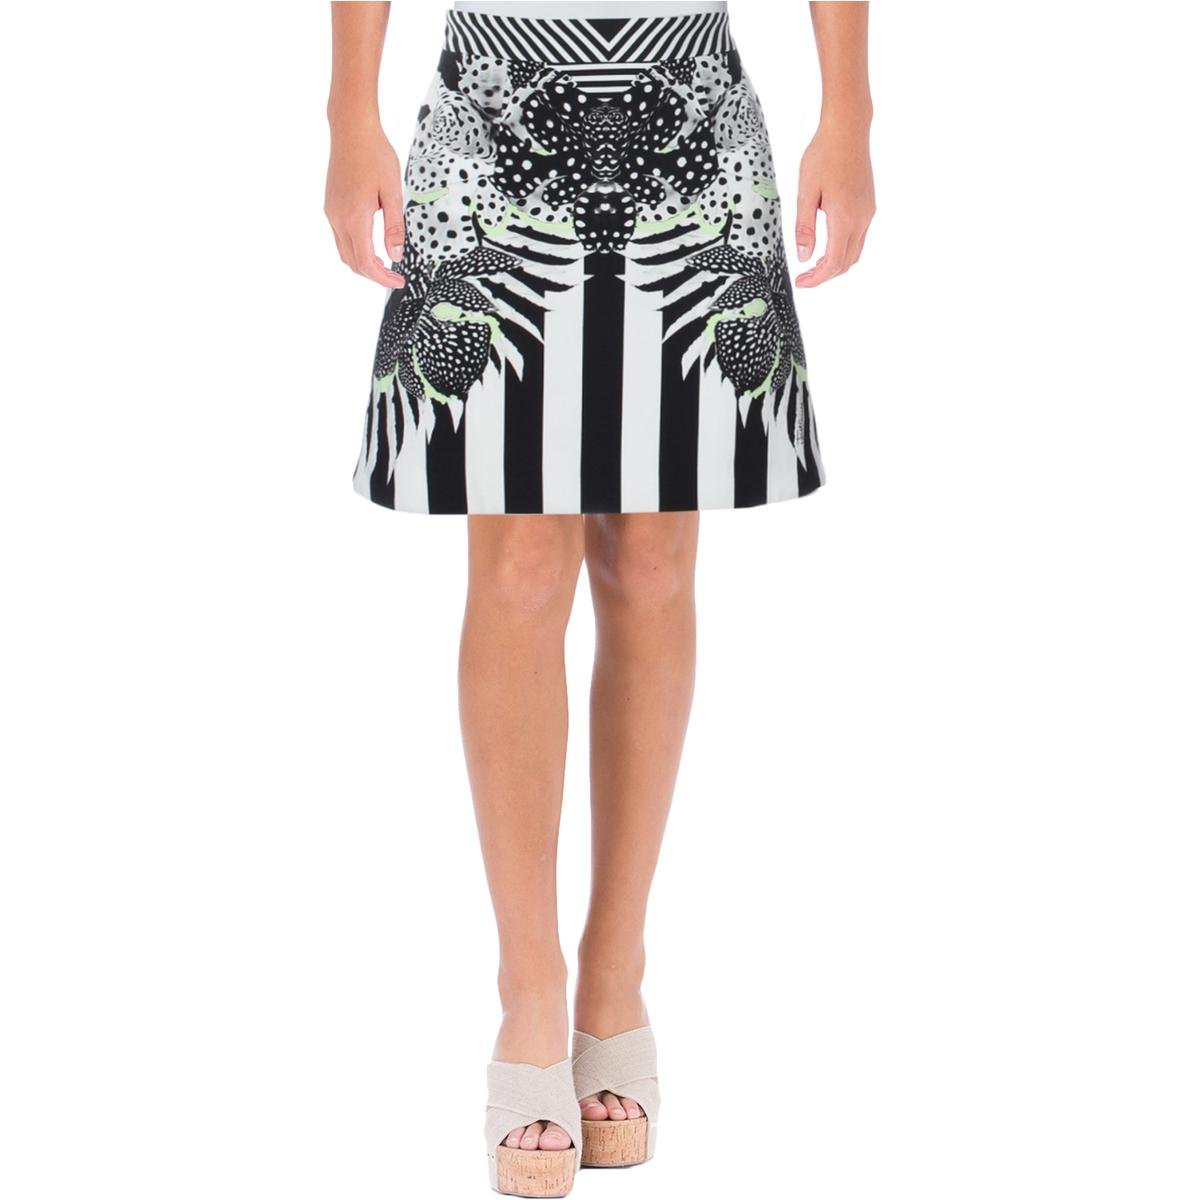 Just Cavalli Womens Crepe Printed A-Line Skirt B/W 36